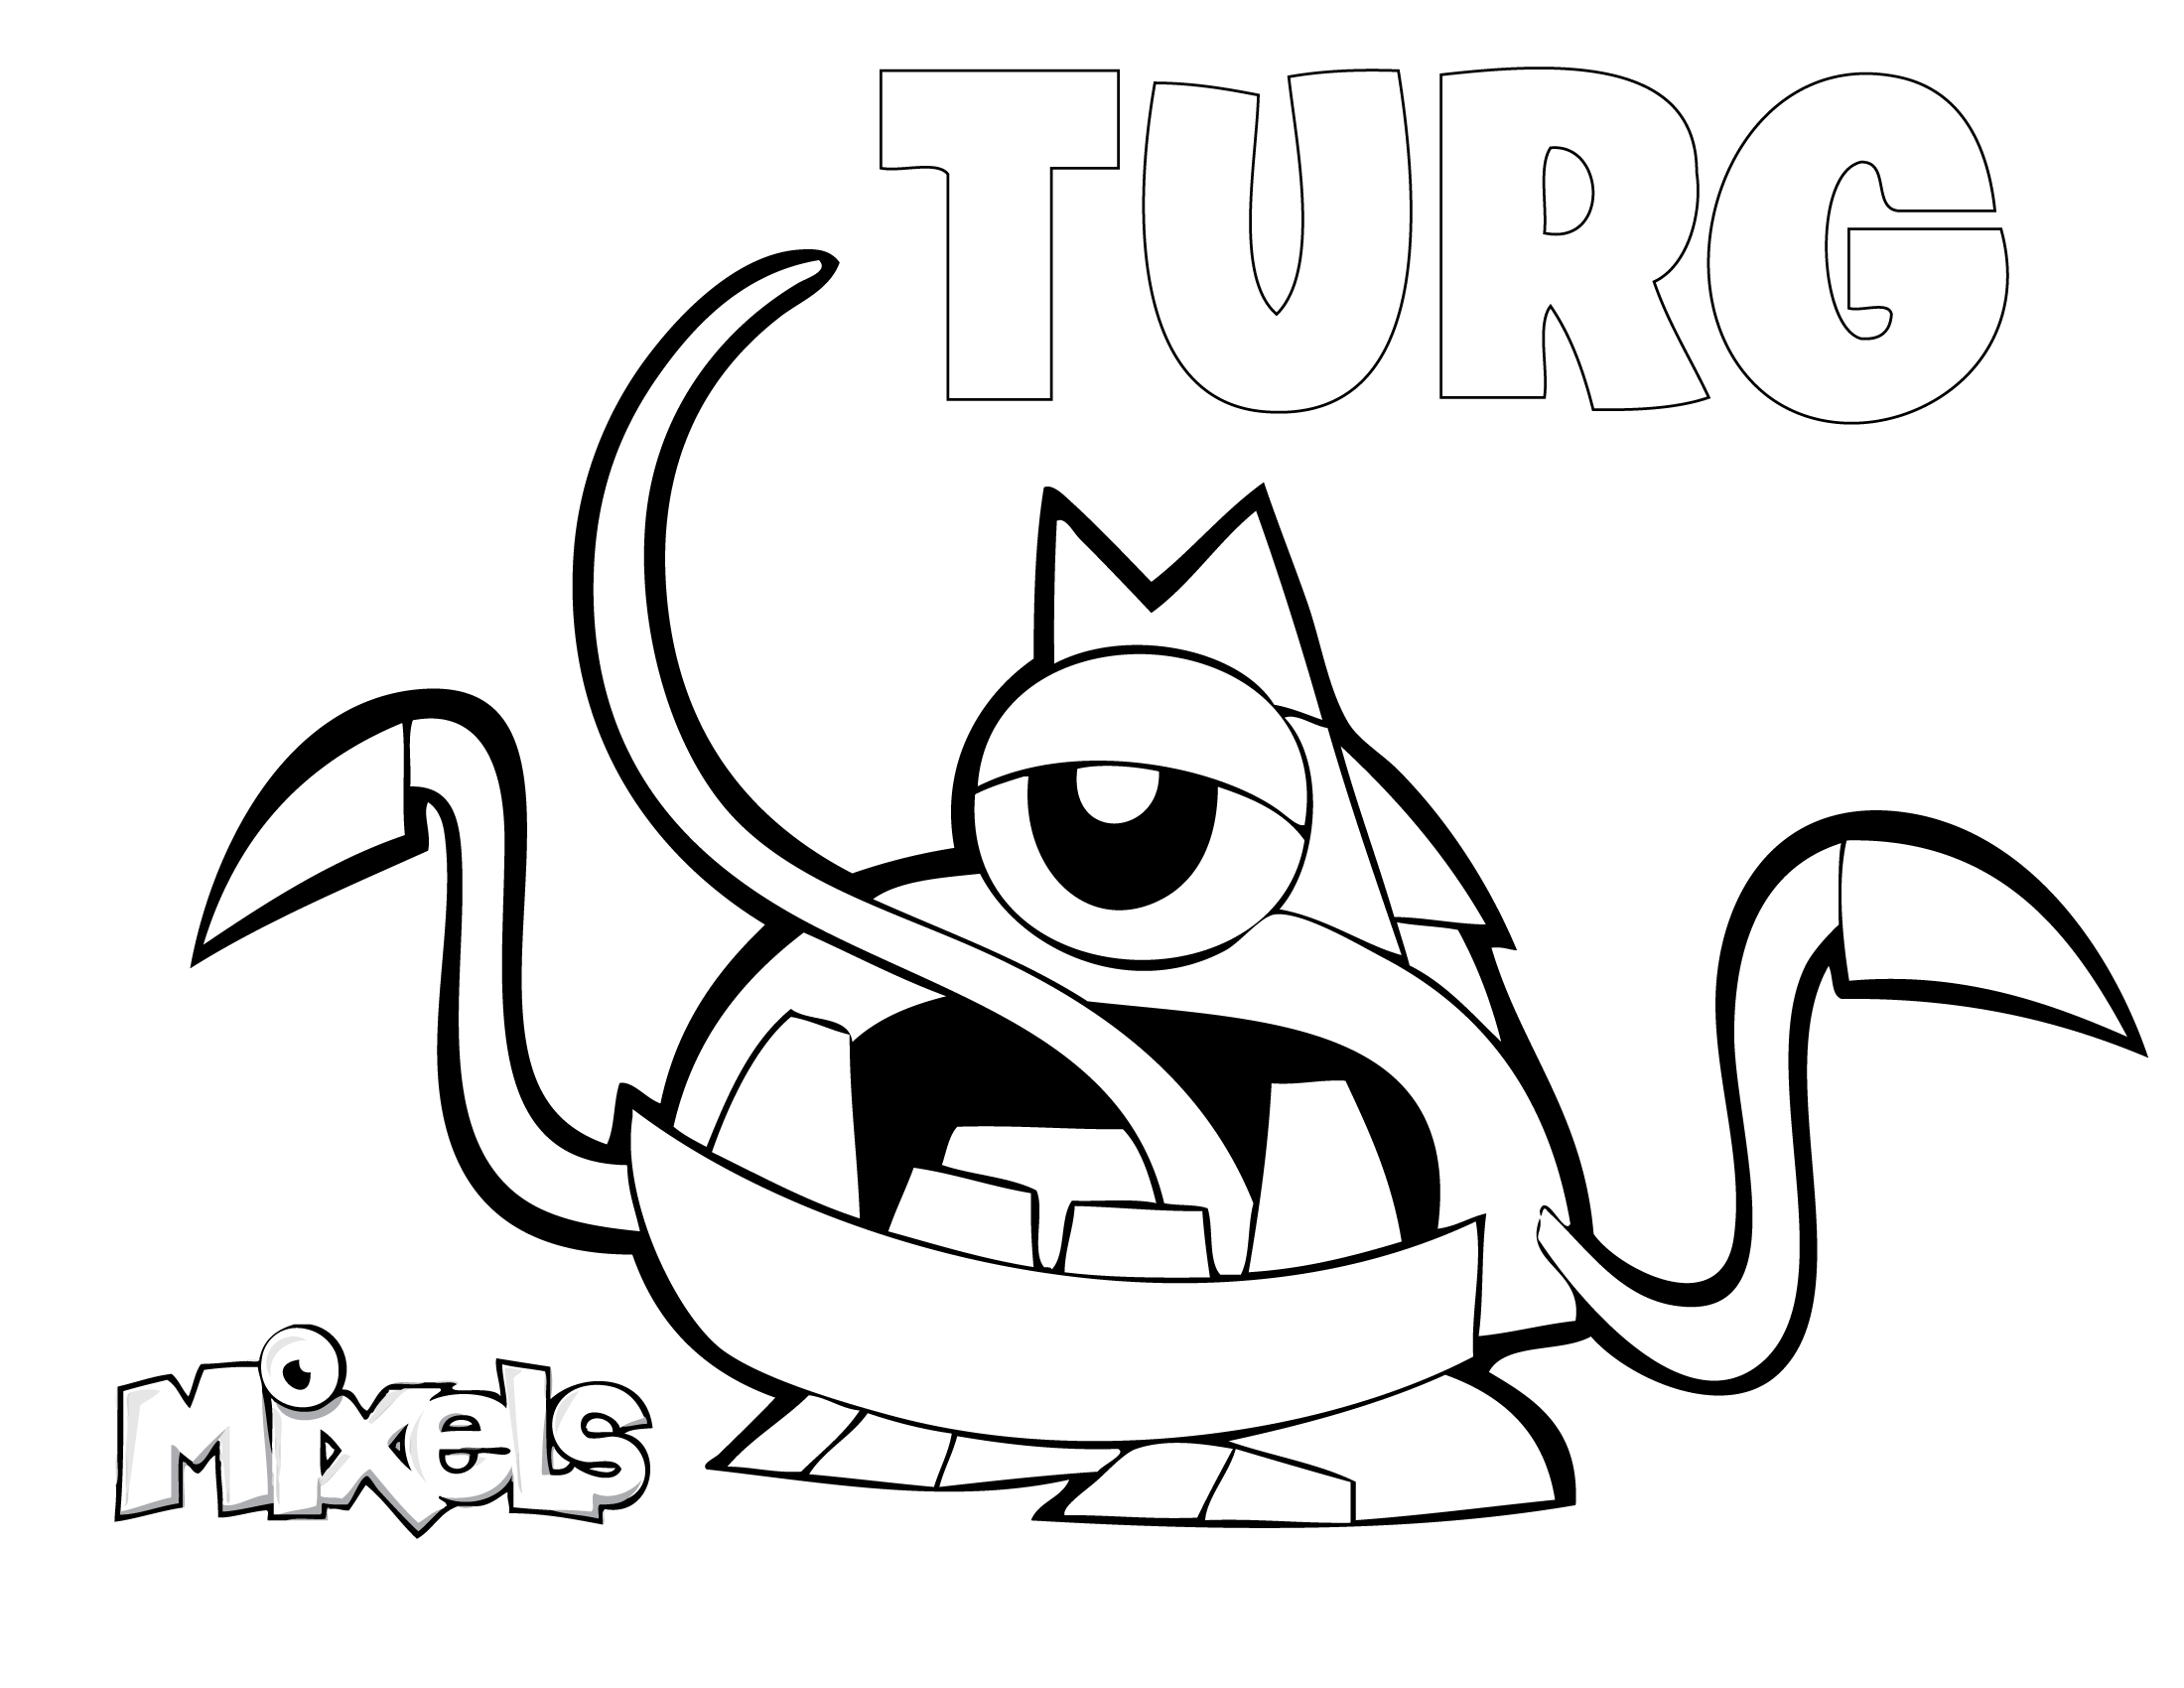 Mixels Turg Coloring Pages Educative Printable Coloring Pages Lego Party Cartoon Network Studios